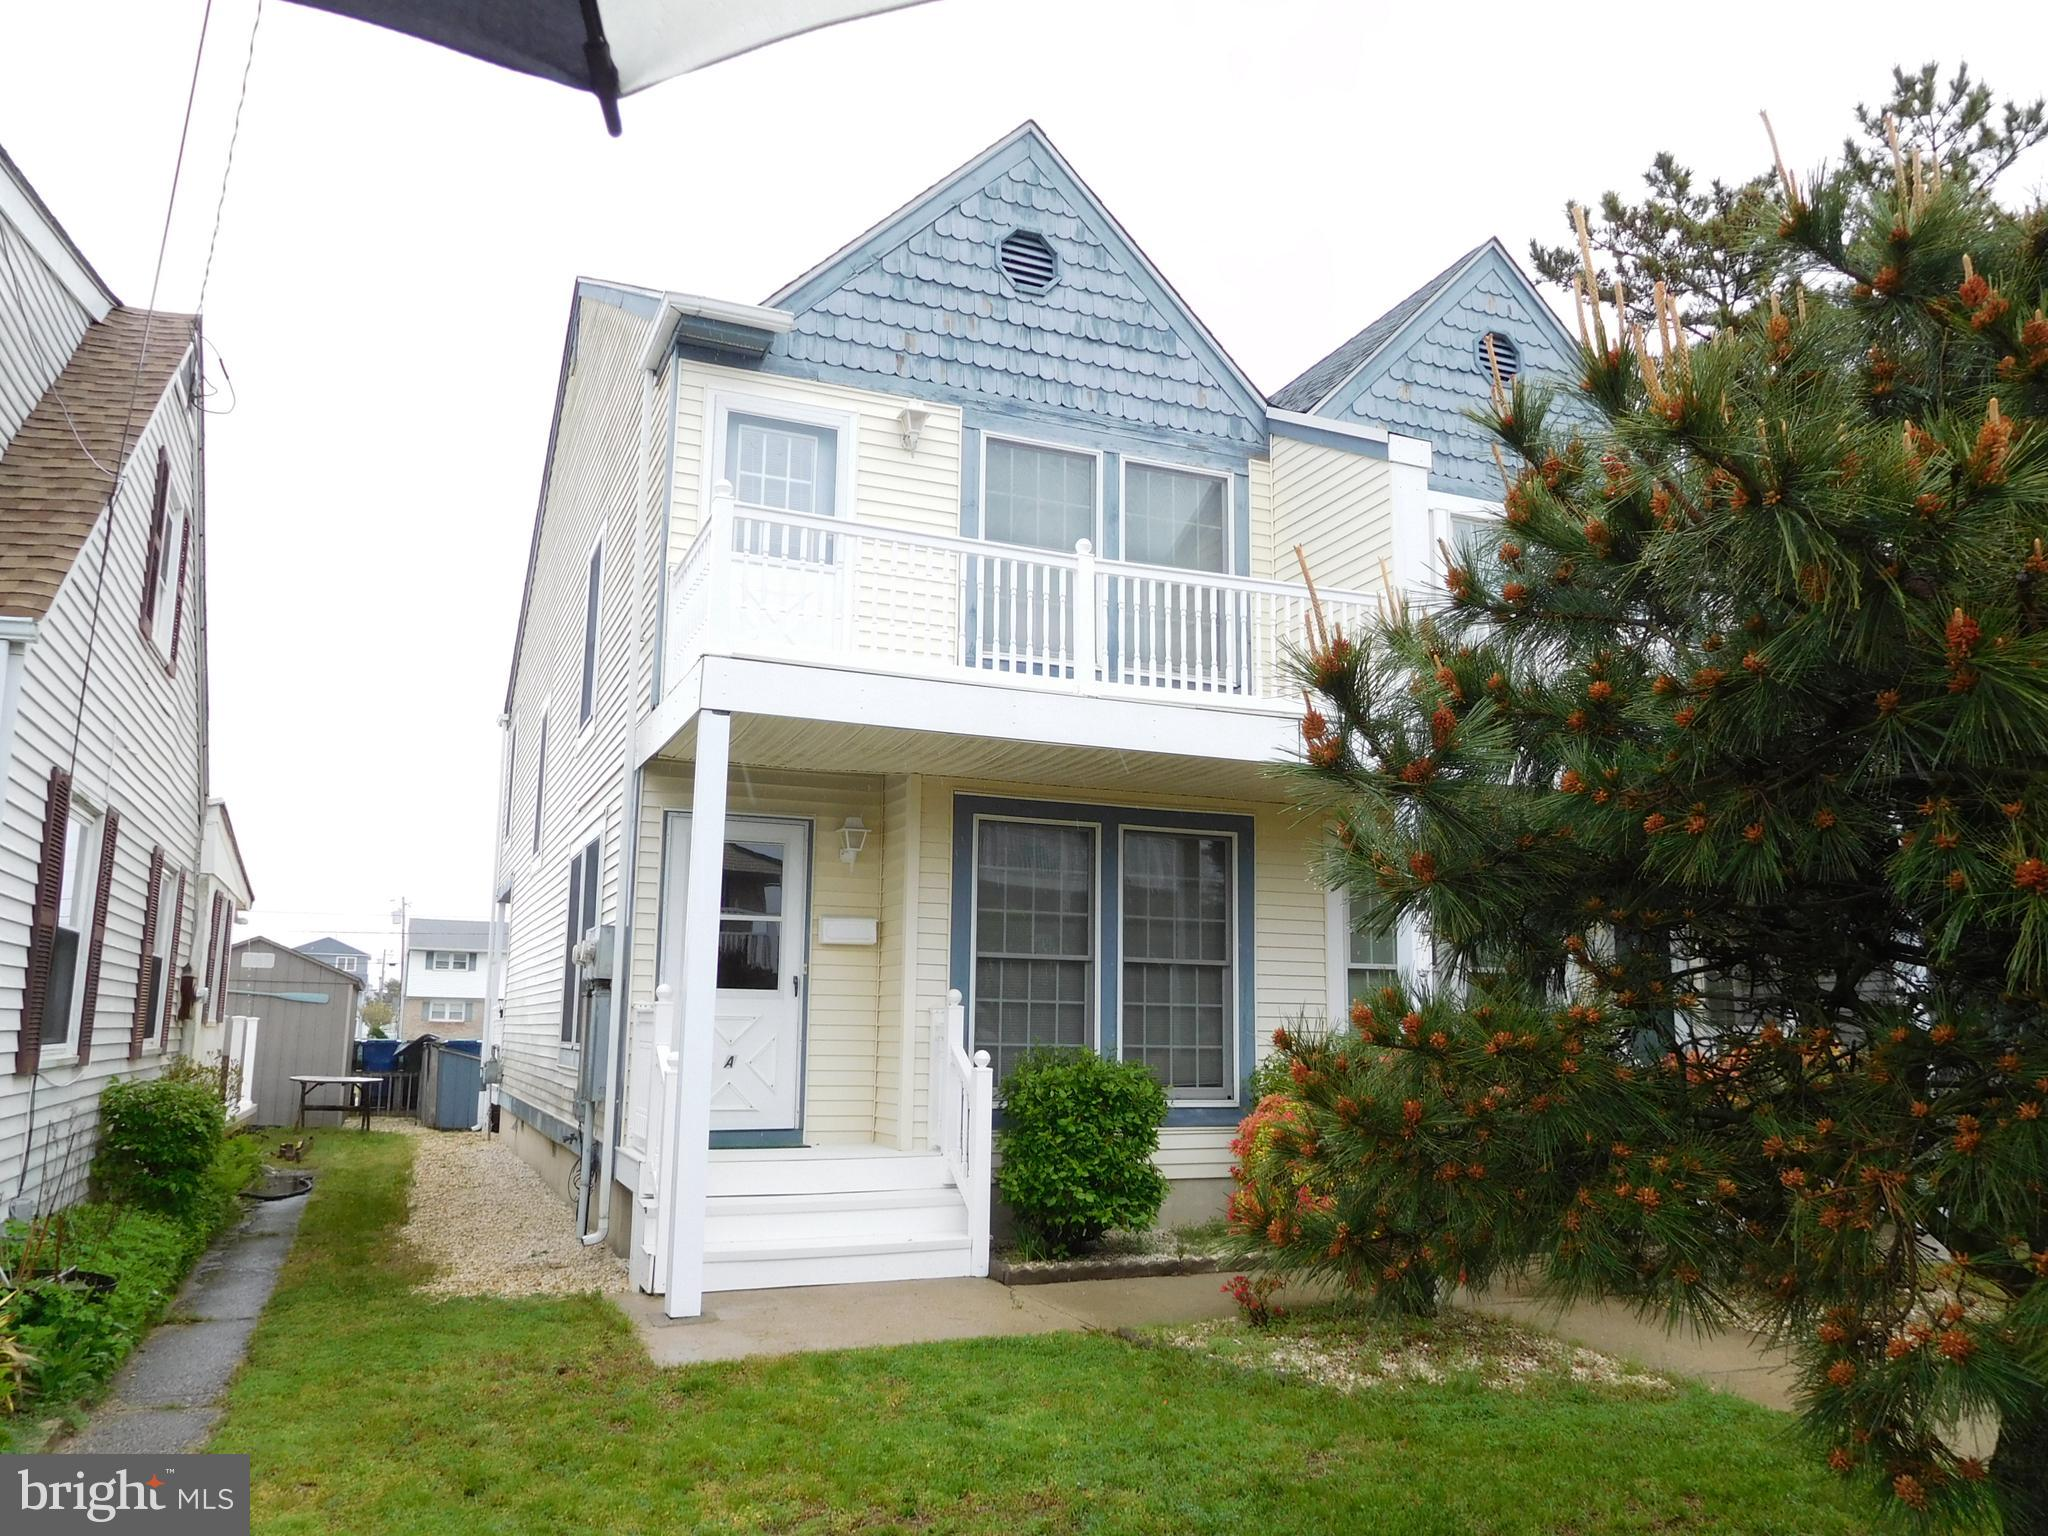 327 36TH ST S A, BRIGANTINE, NJ 08203